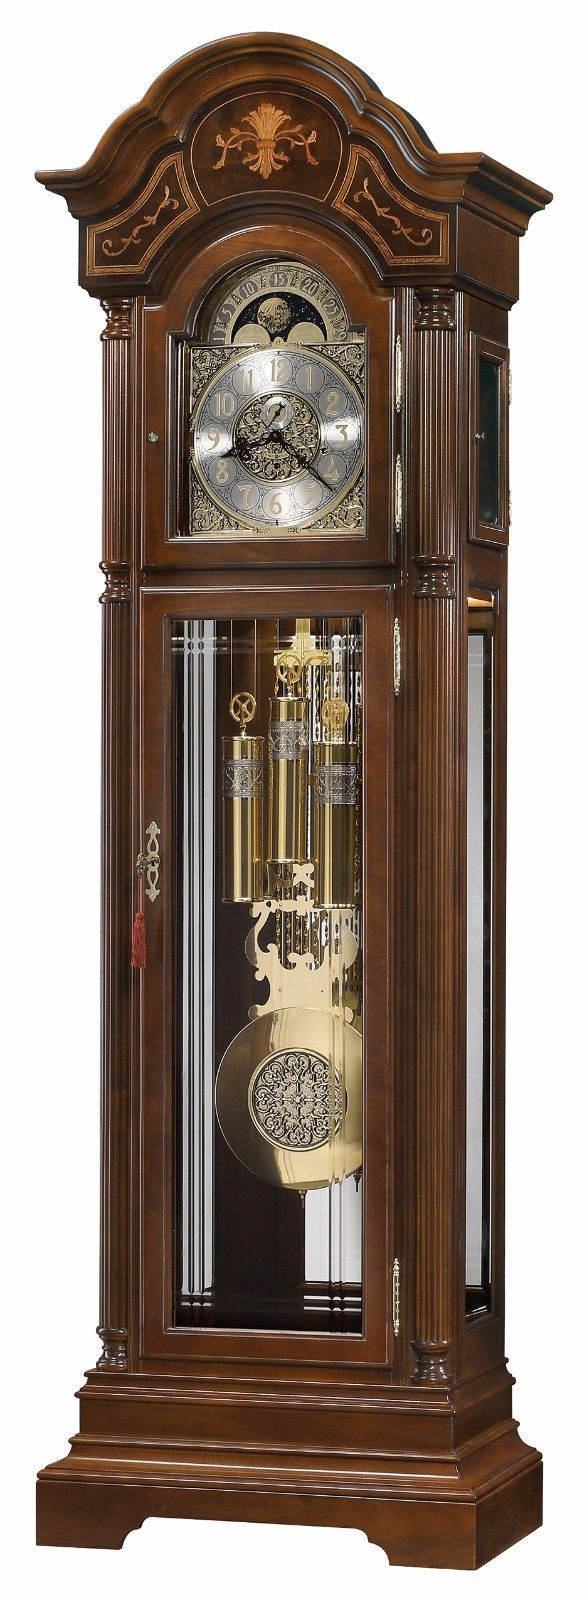 Howard Miller Harding Grandfather Floor Clock 611-248 611248 FREE Shipping